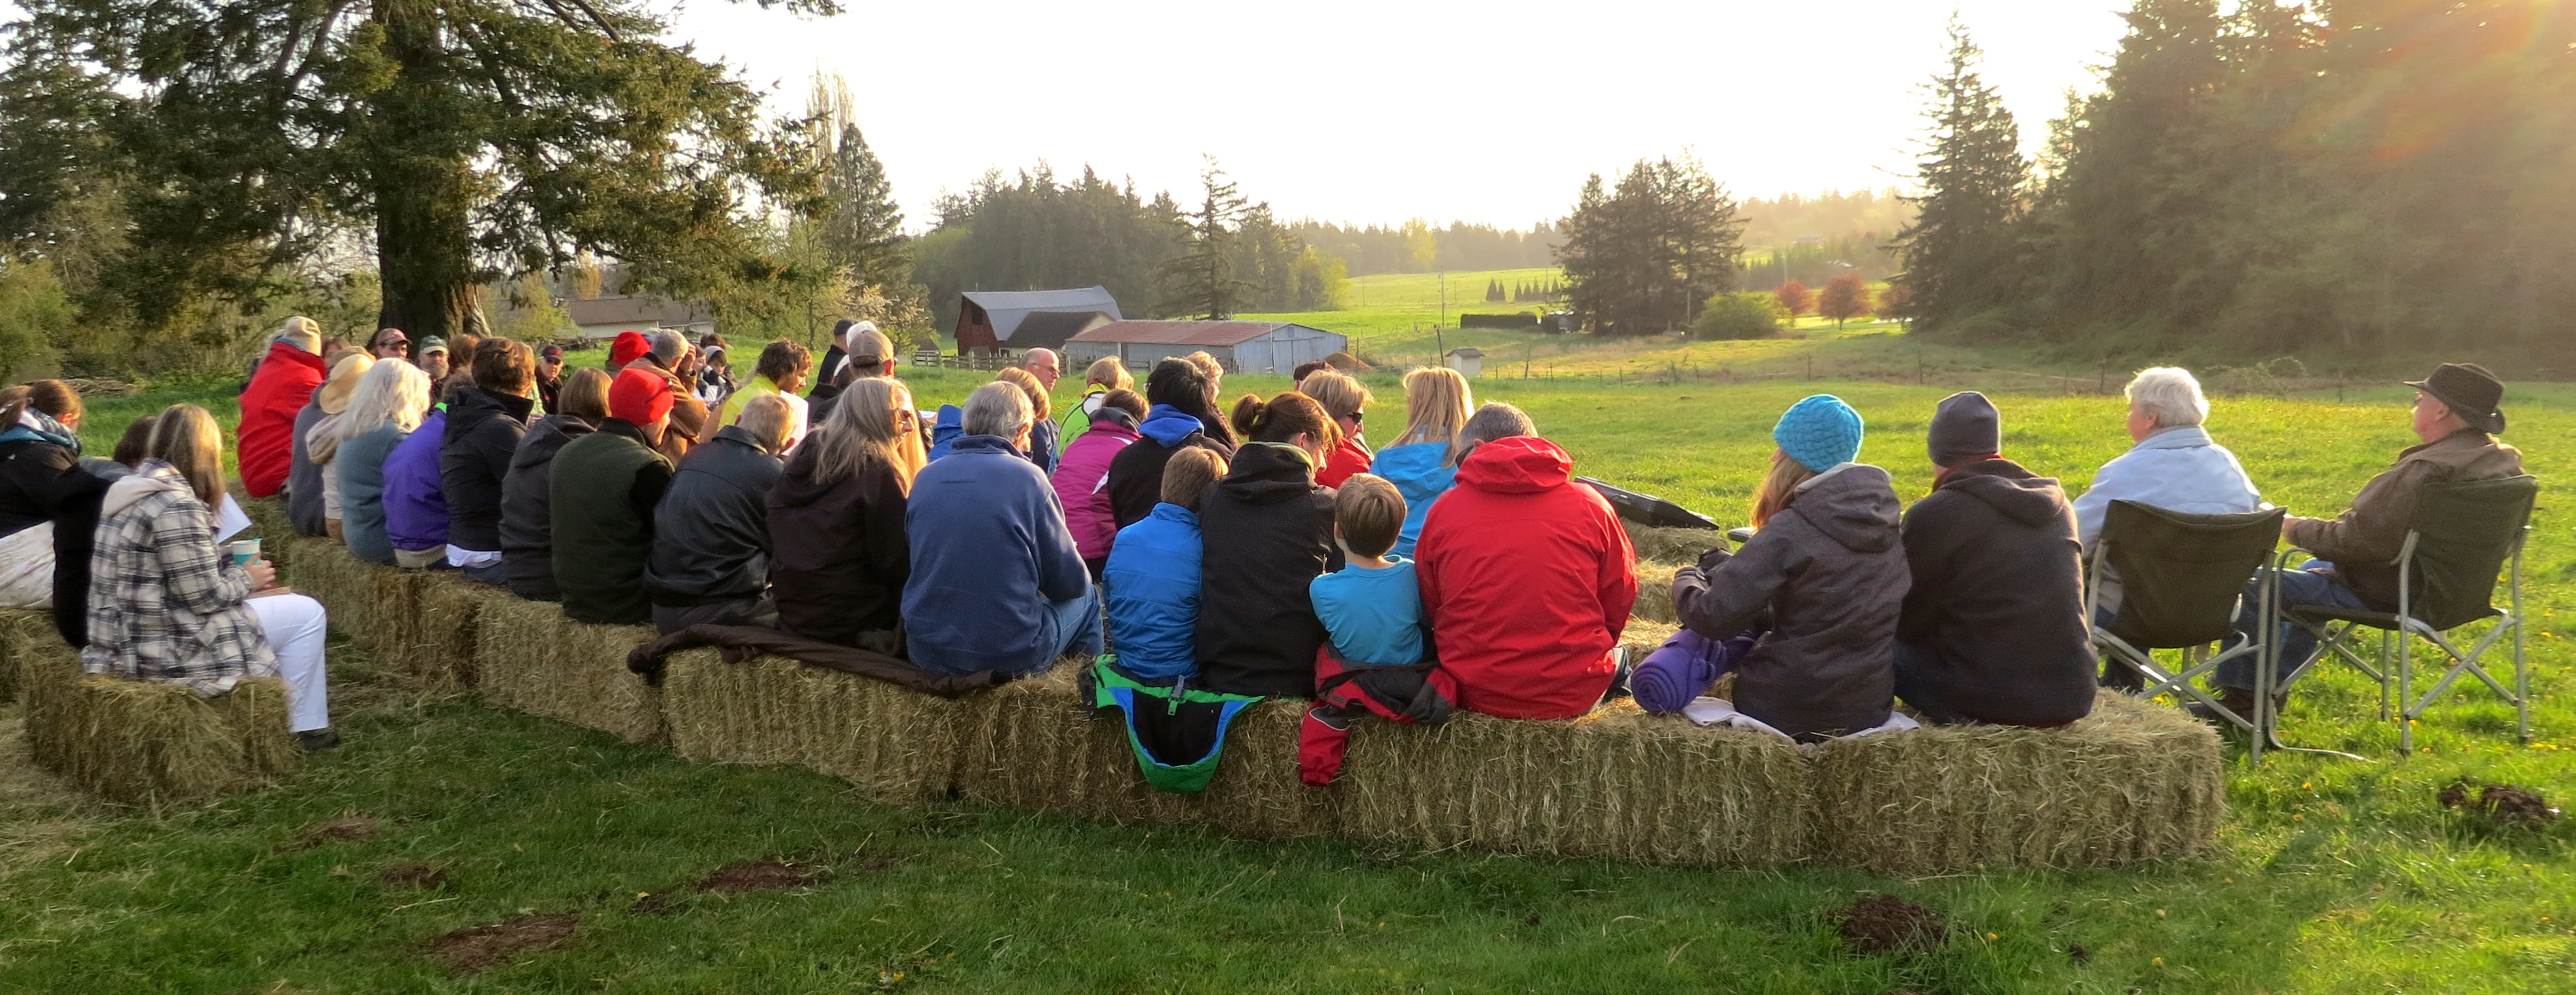 Some of the worshippers at our 2014 Easter Sunrise Service on our farm hilltop